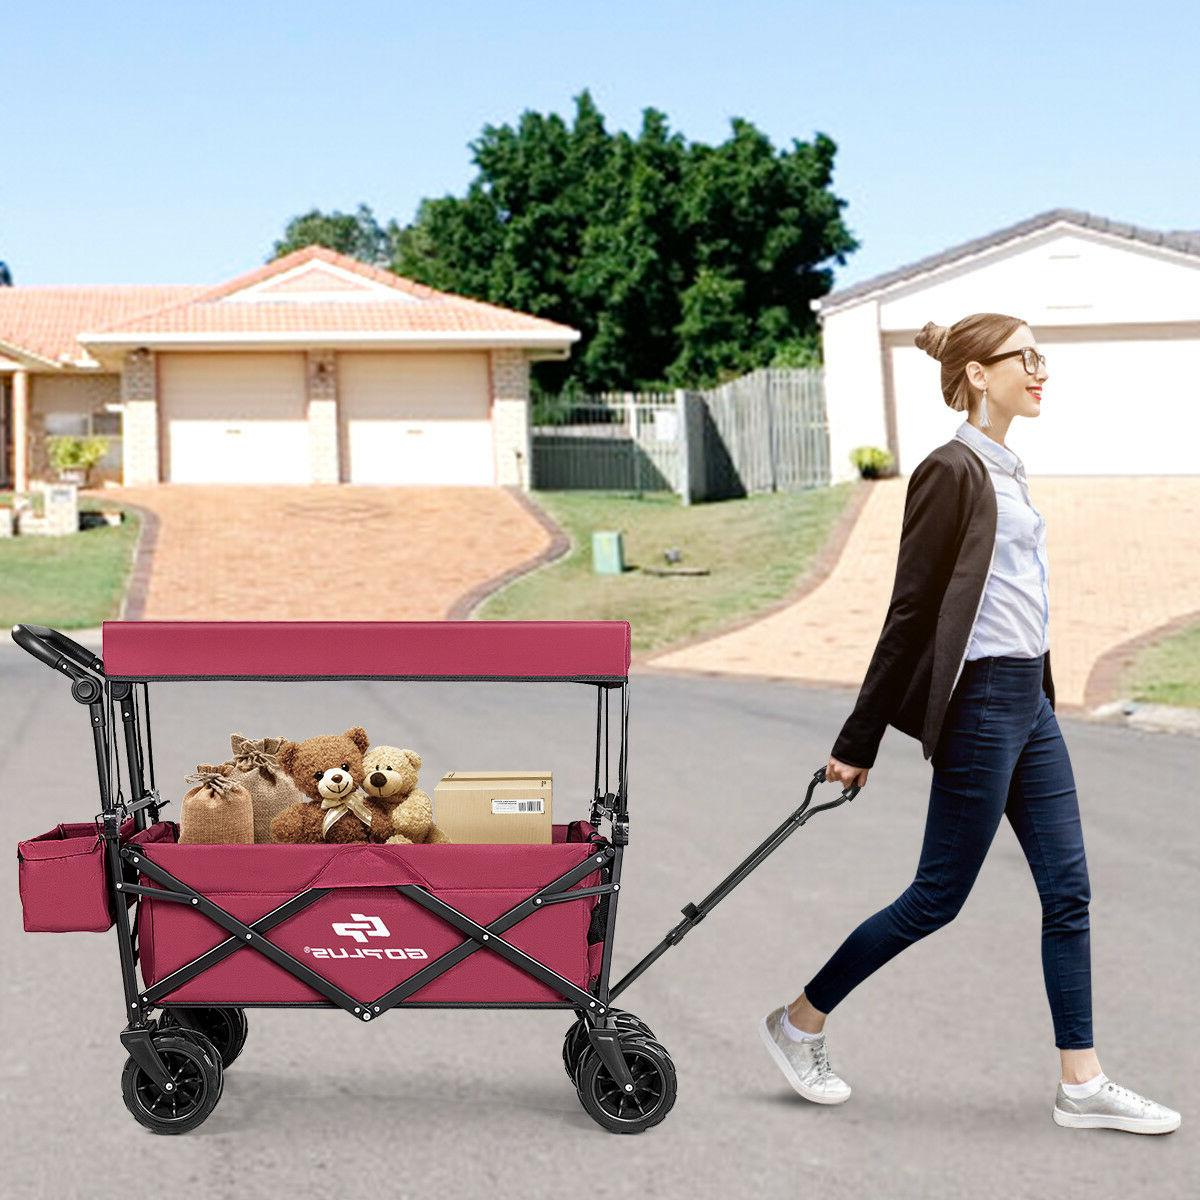 Collapsible W/ Canopy Outdoor Utility Garden Trolley Buggy